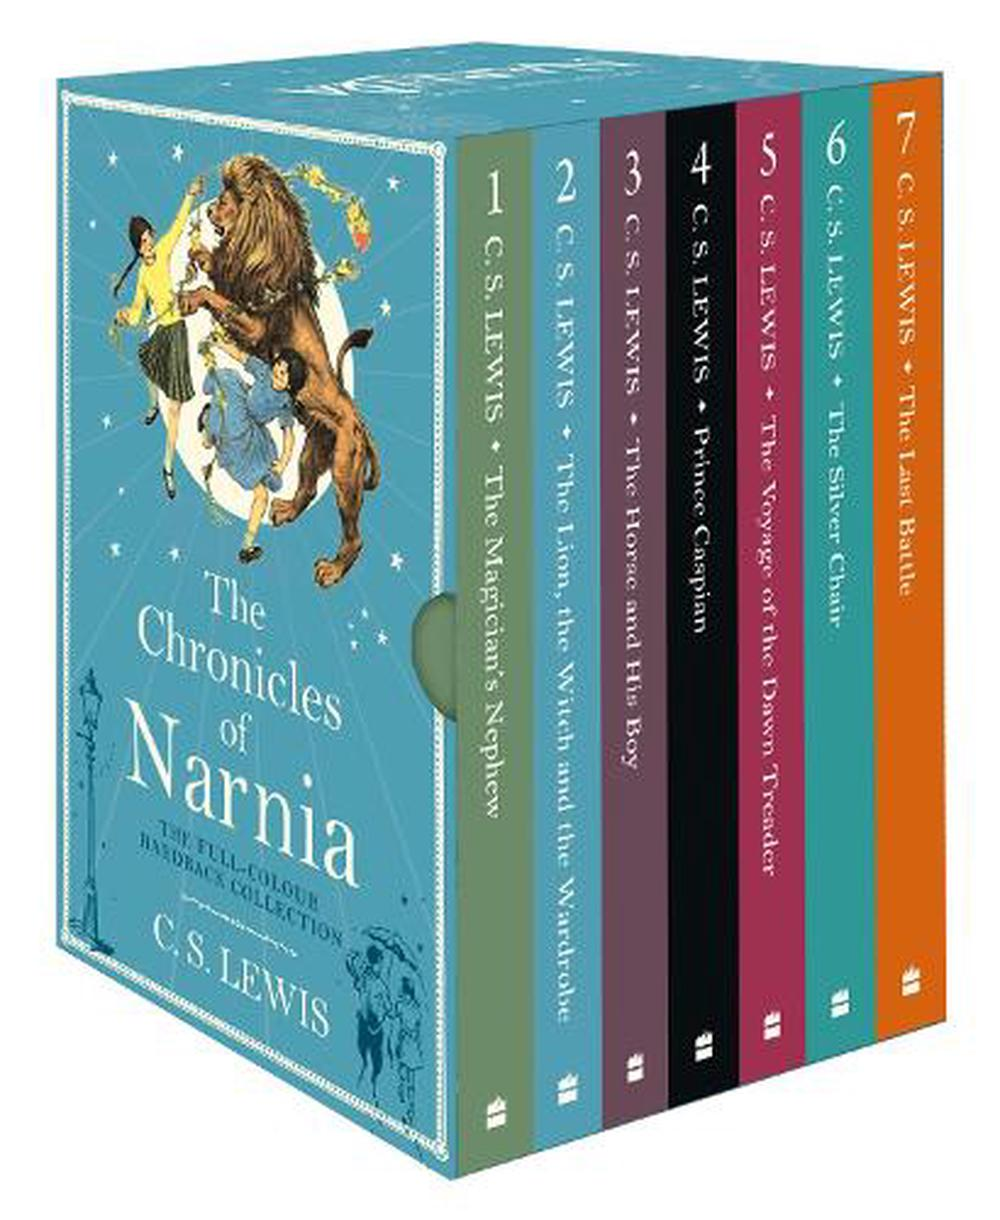 chronicles of narnia box set by c s lewis  book